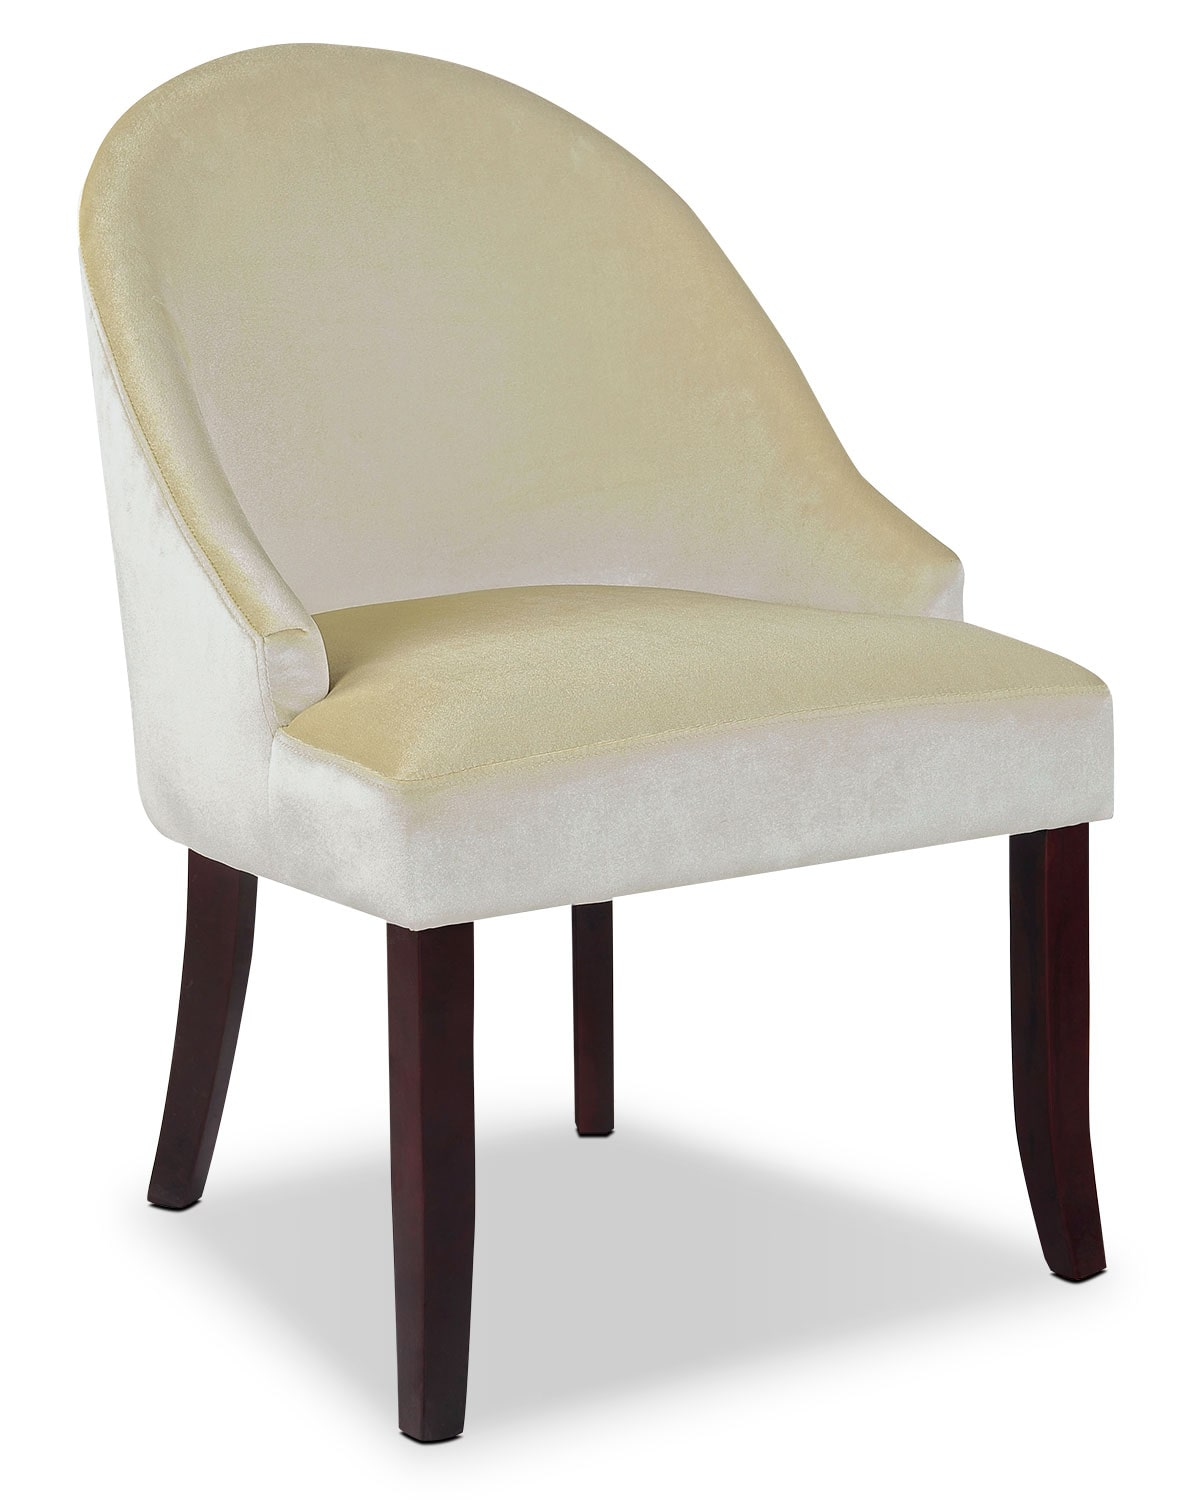 DAD Velvet Fabric Accent Chair – Cream